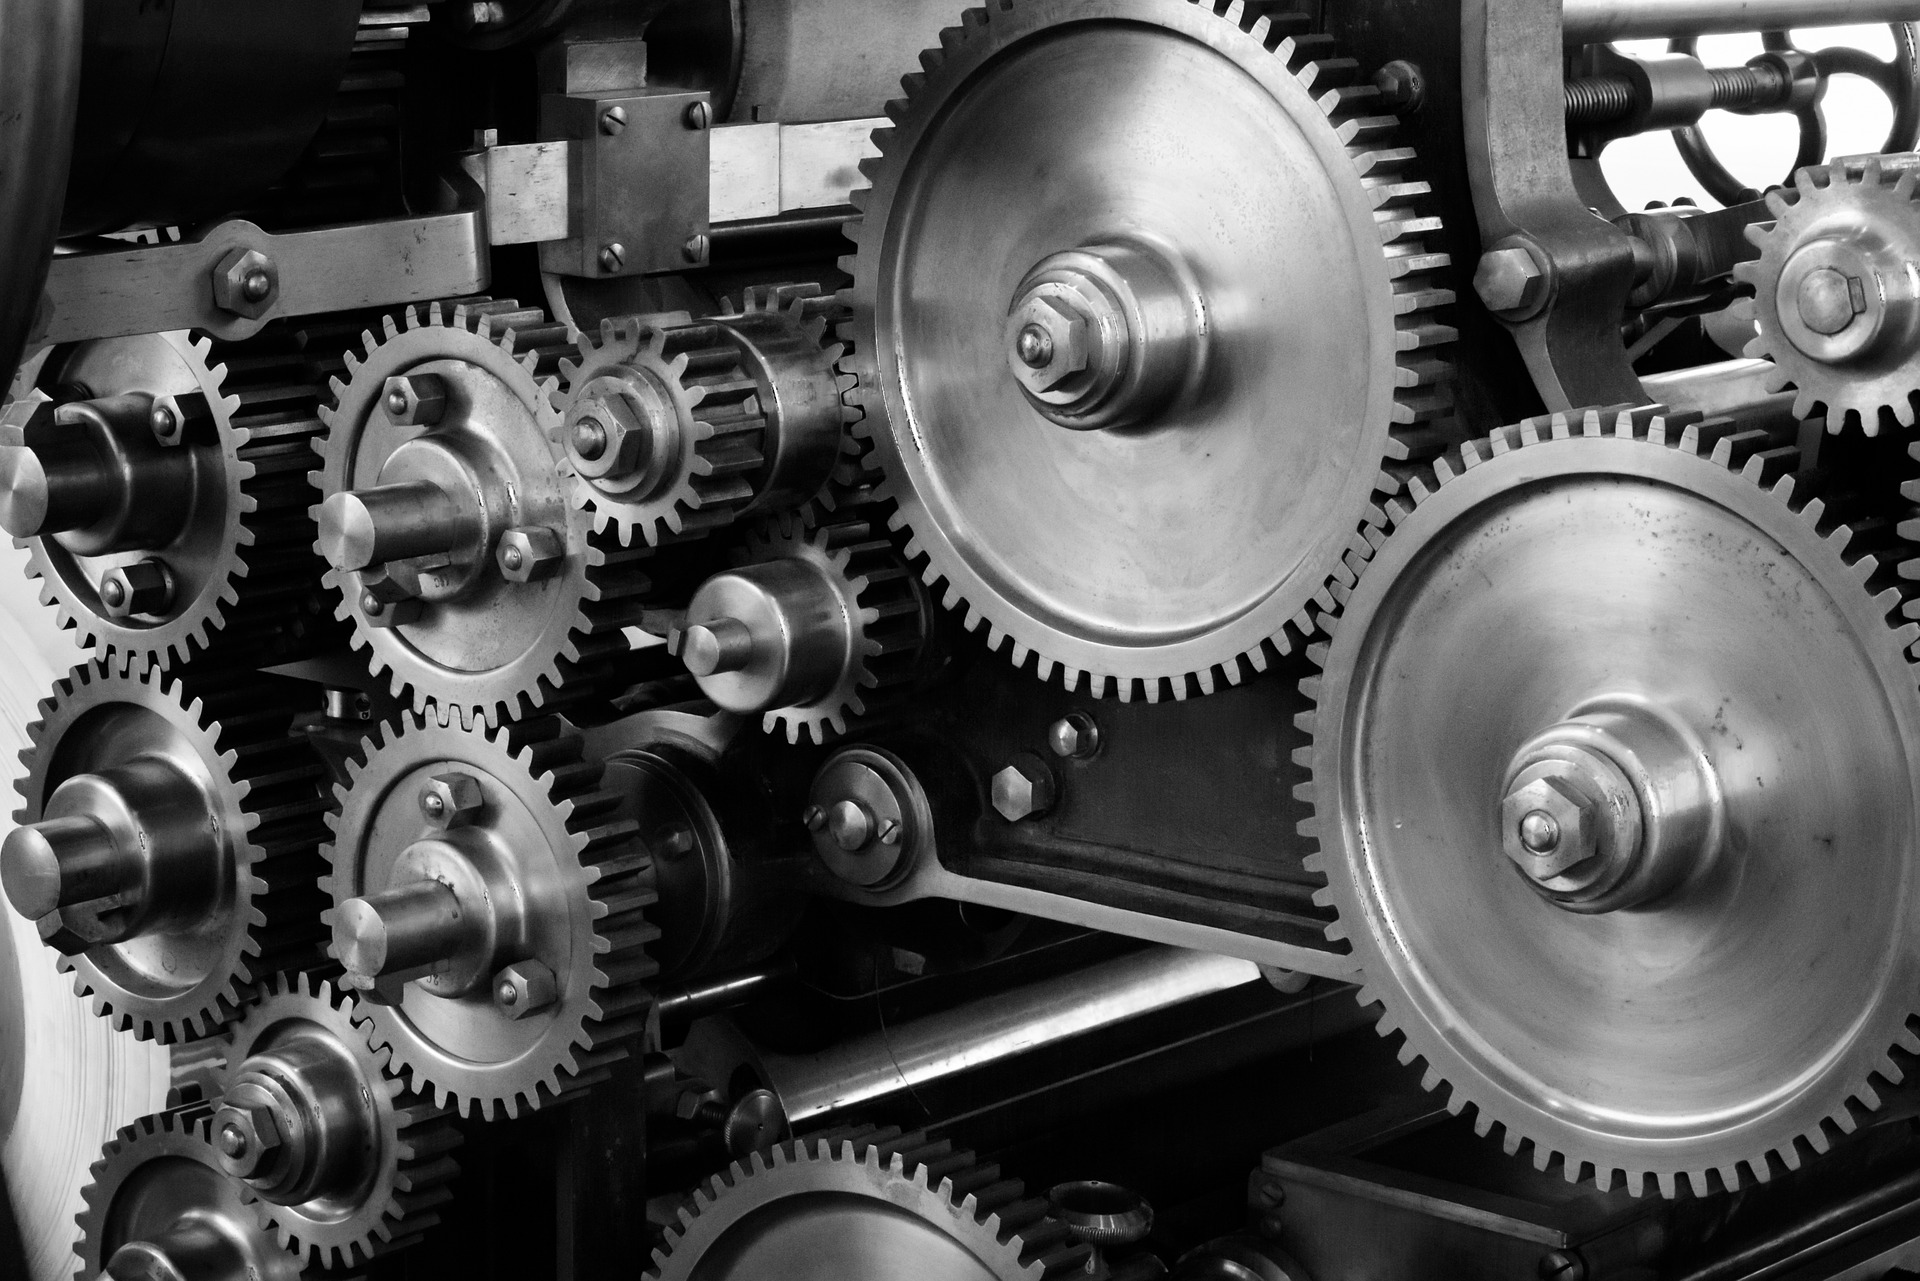 file/ELEMENTO_NEWSLETTER/20122/Industria_Ingranaggi_gears-1236578_1920.jpg